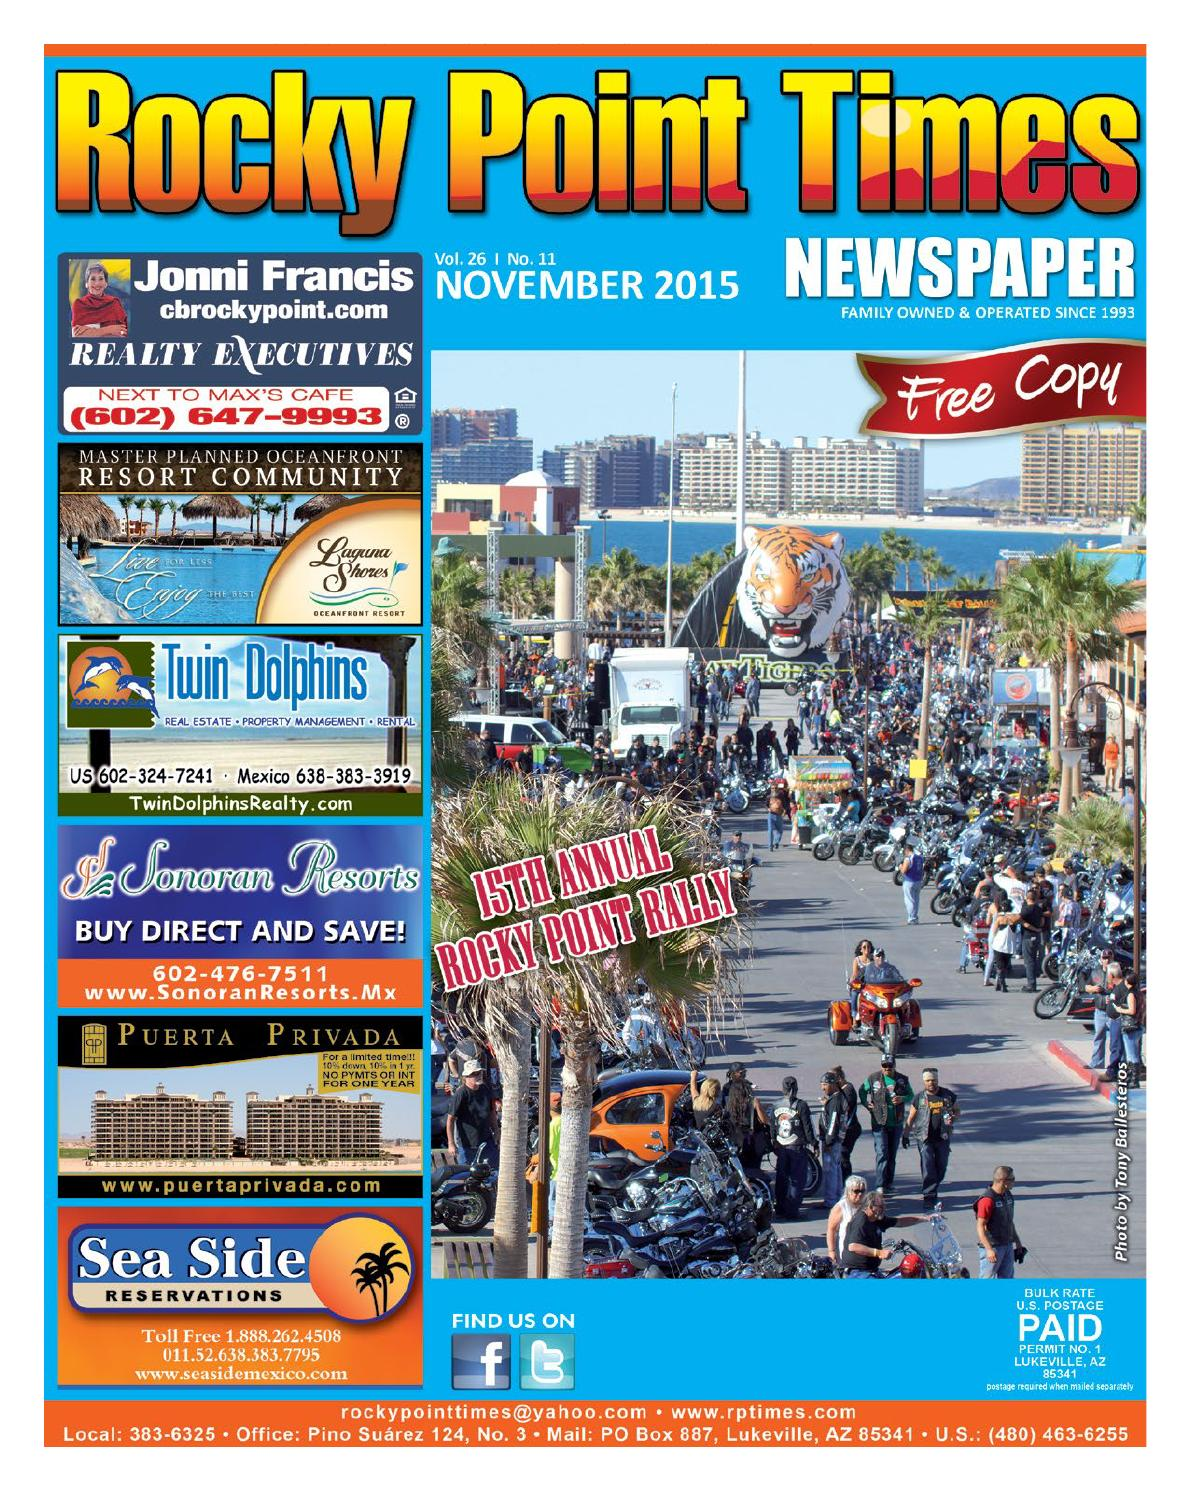 Rocky Point Times February 2016 By Rocky Point Services Issuu